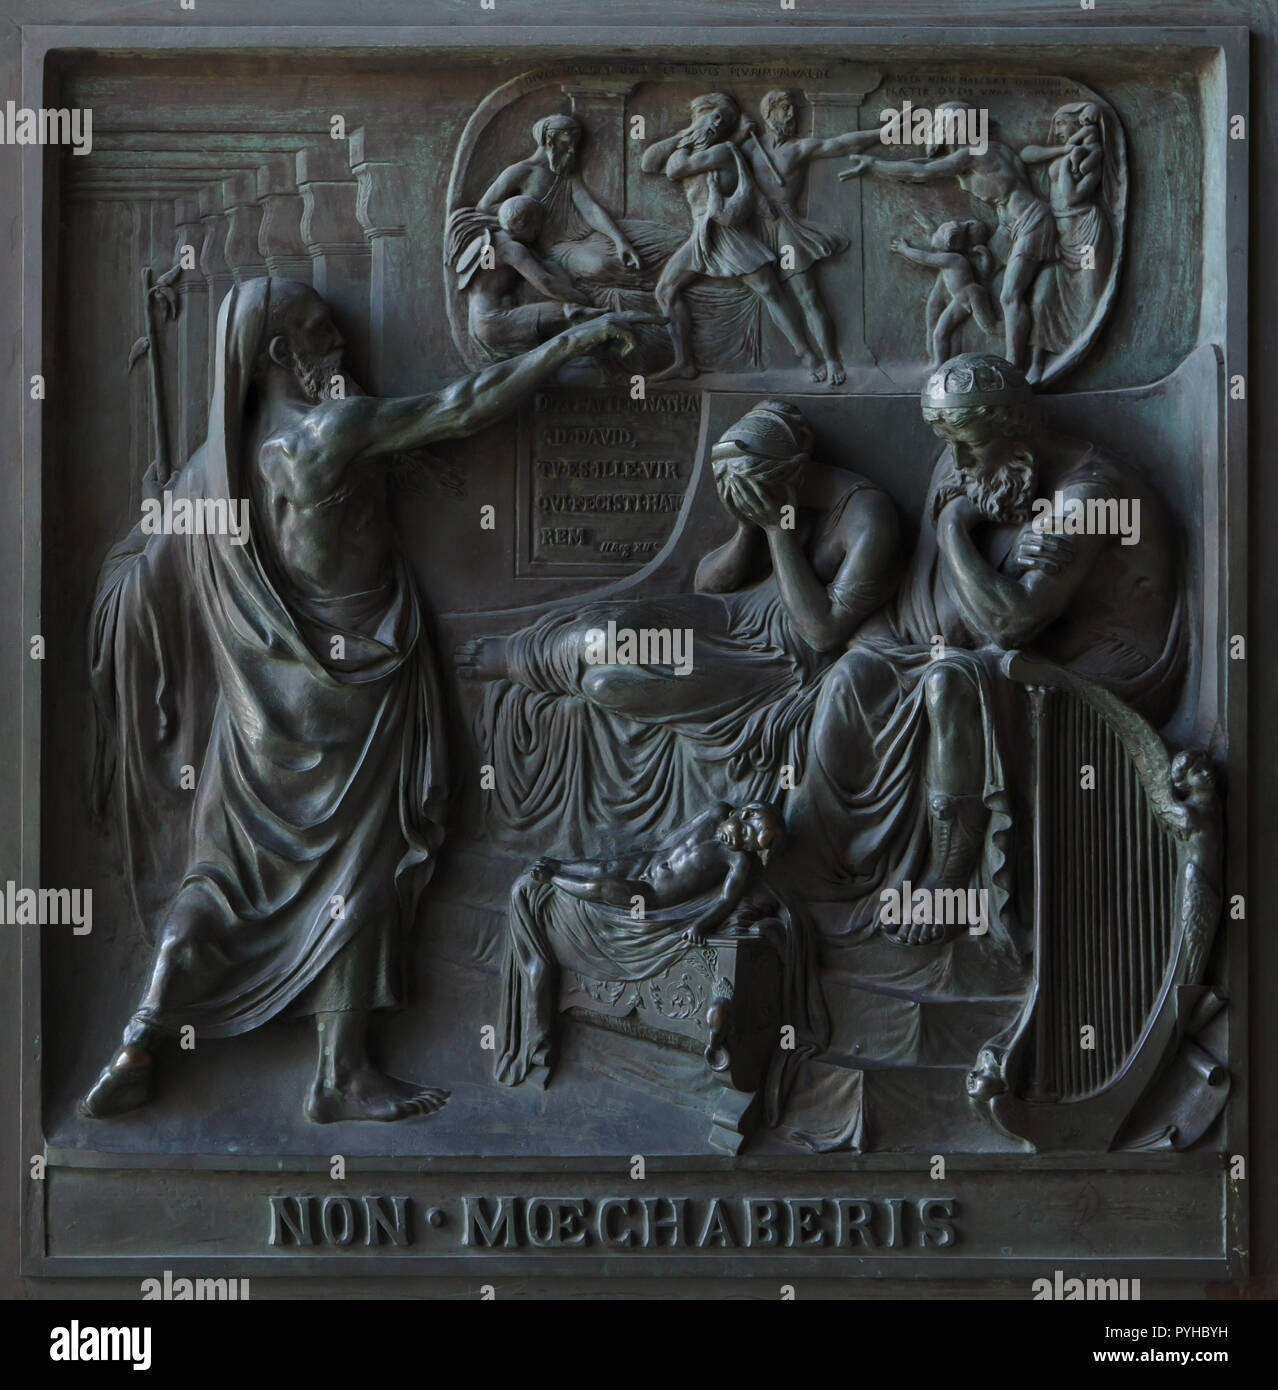 Thou shalt not commit adultery. Bronze bas relief by French sculptor Henri de Triqueti with assistance from Etienne Hippolyte Maindron (1834-1841) on the main doors of the Madeleine Church (Église de la Madeleine) in Paris, France. The Old Testament story of King David, seated beside Bathsheba, overcomed with remorse as the stern prophet Nathan confronts him are depicted to illustrate one of the Ten Commandments. - Stock Image